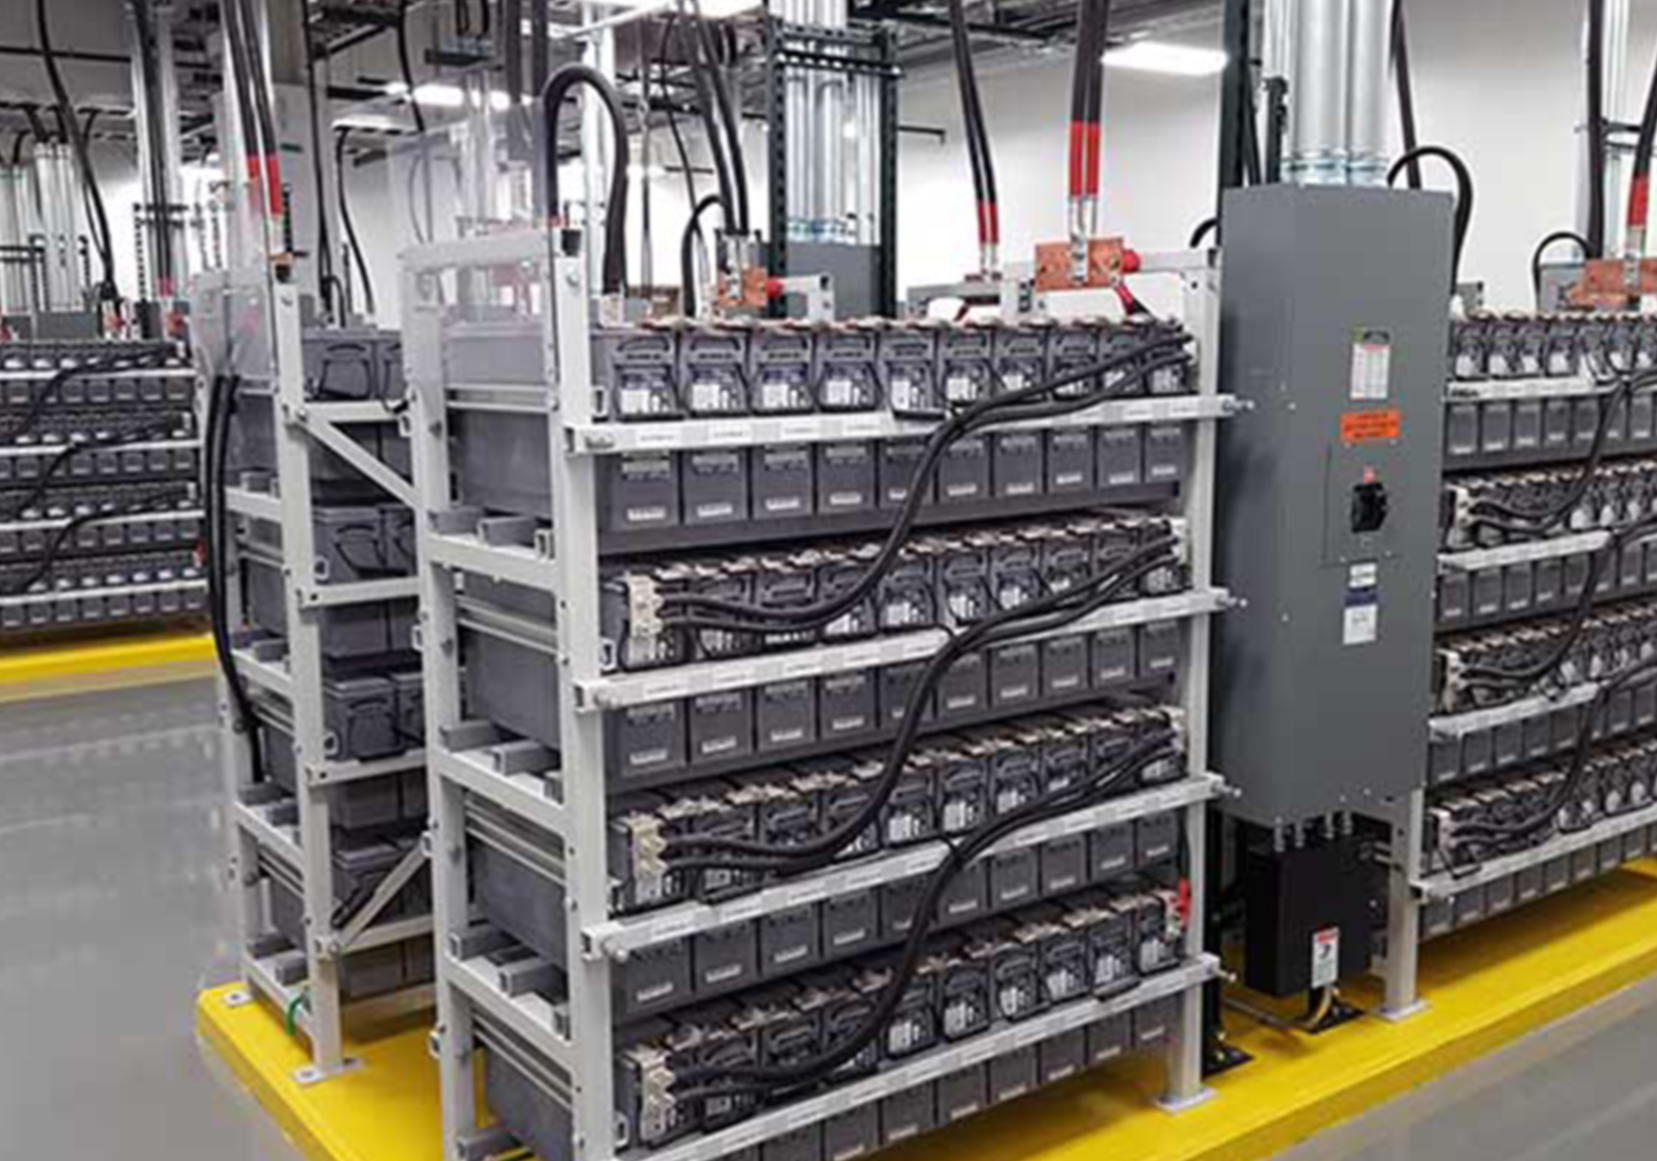 A shelf of servers in a data centre